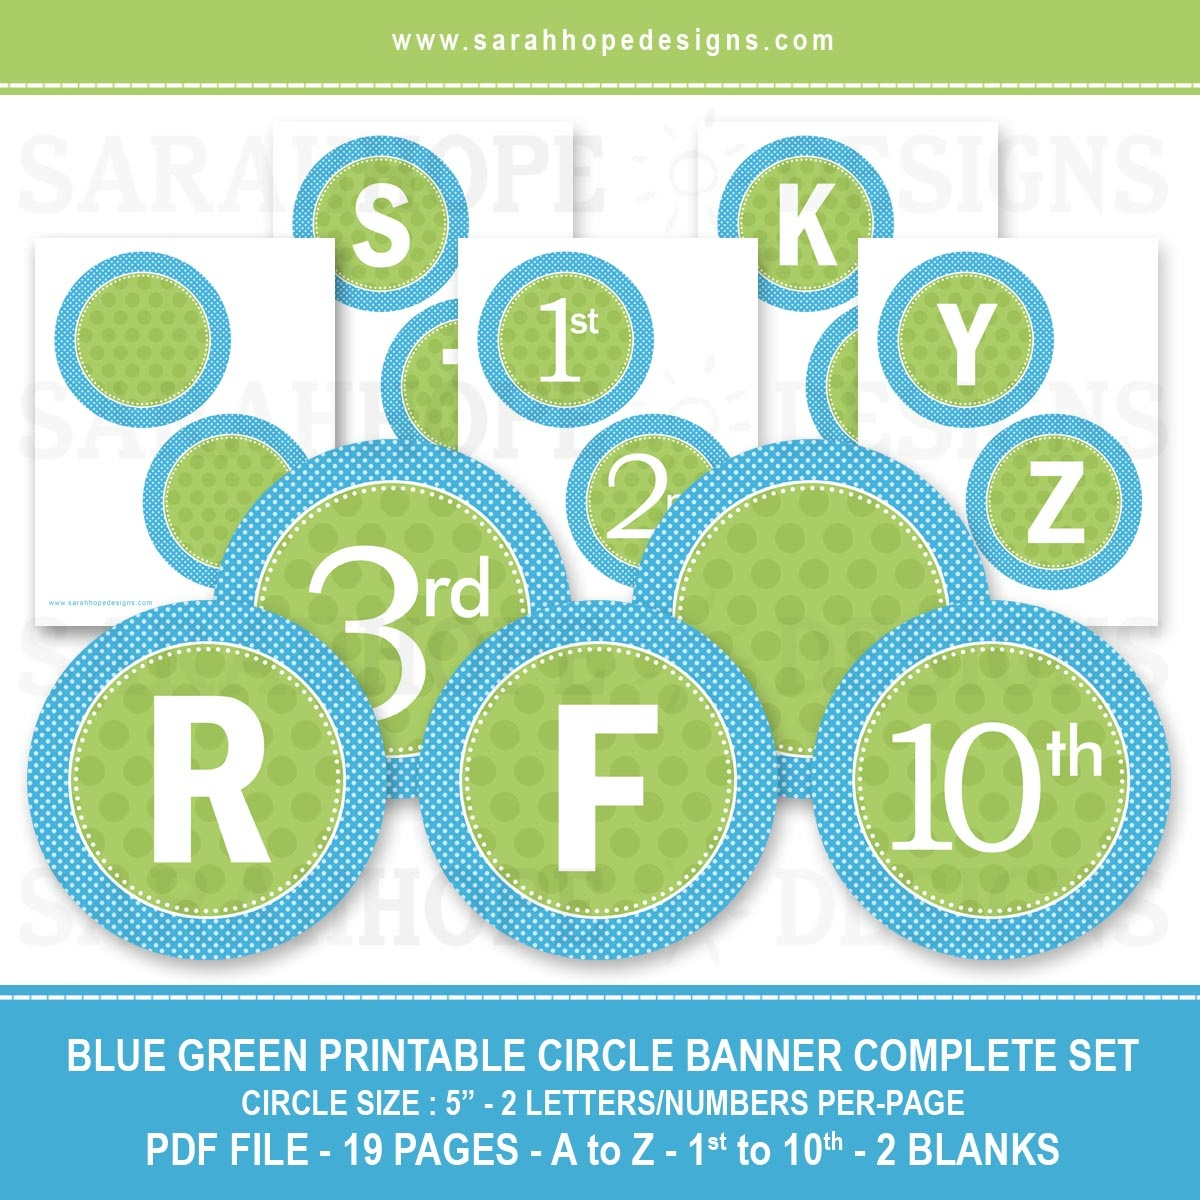 Spell Out Anything With These Free Alphabet Circle Banners From - Free Printable Alphabet Letters For Banners